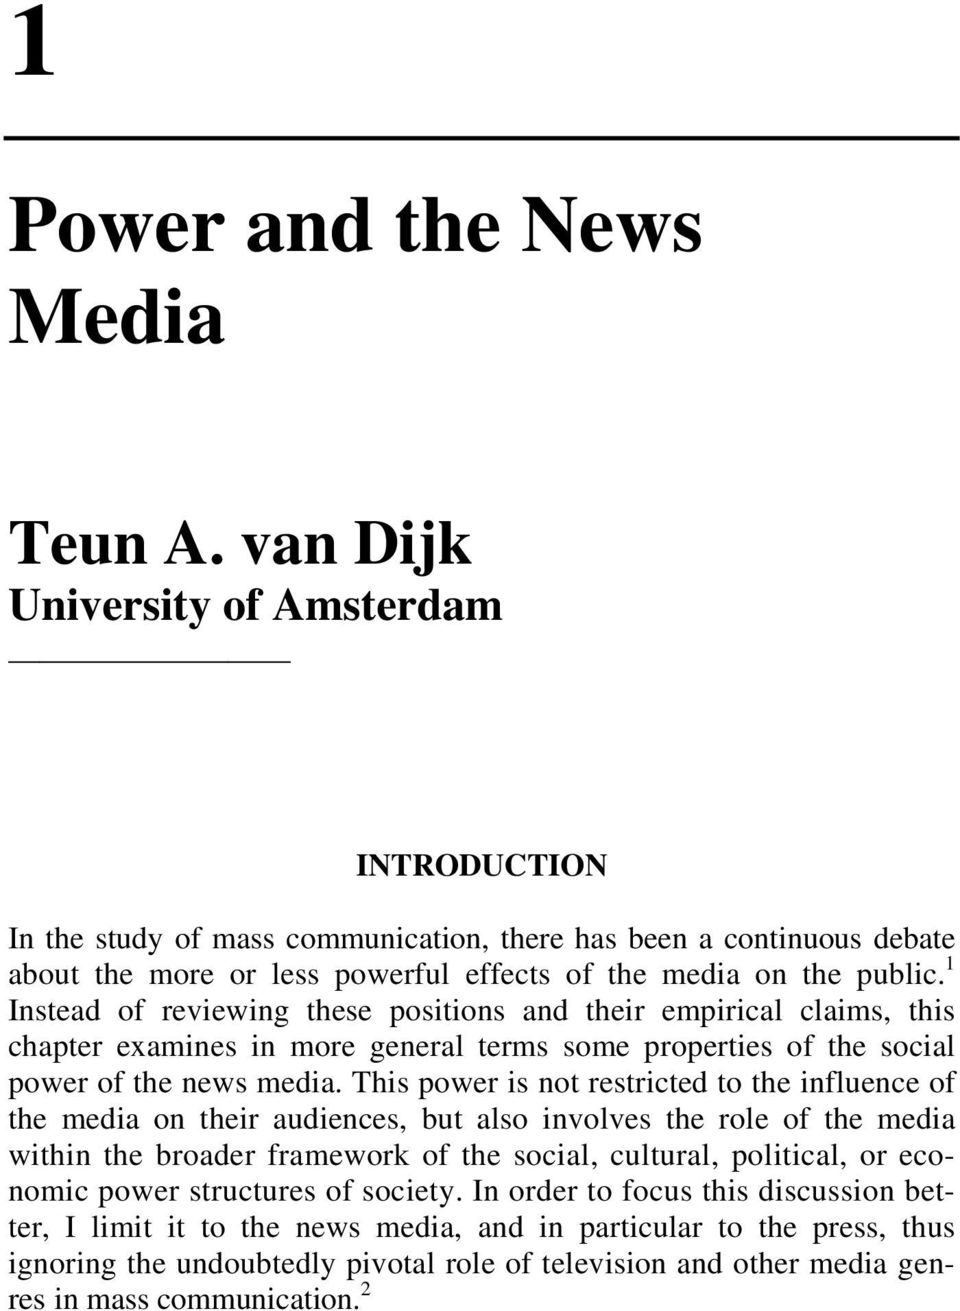 1 Instead of reviewing these positions and their empirical claims, this chapter examines in more general terms some properties of the social power of the news media.